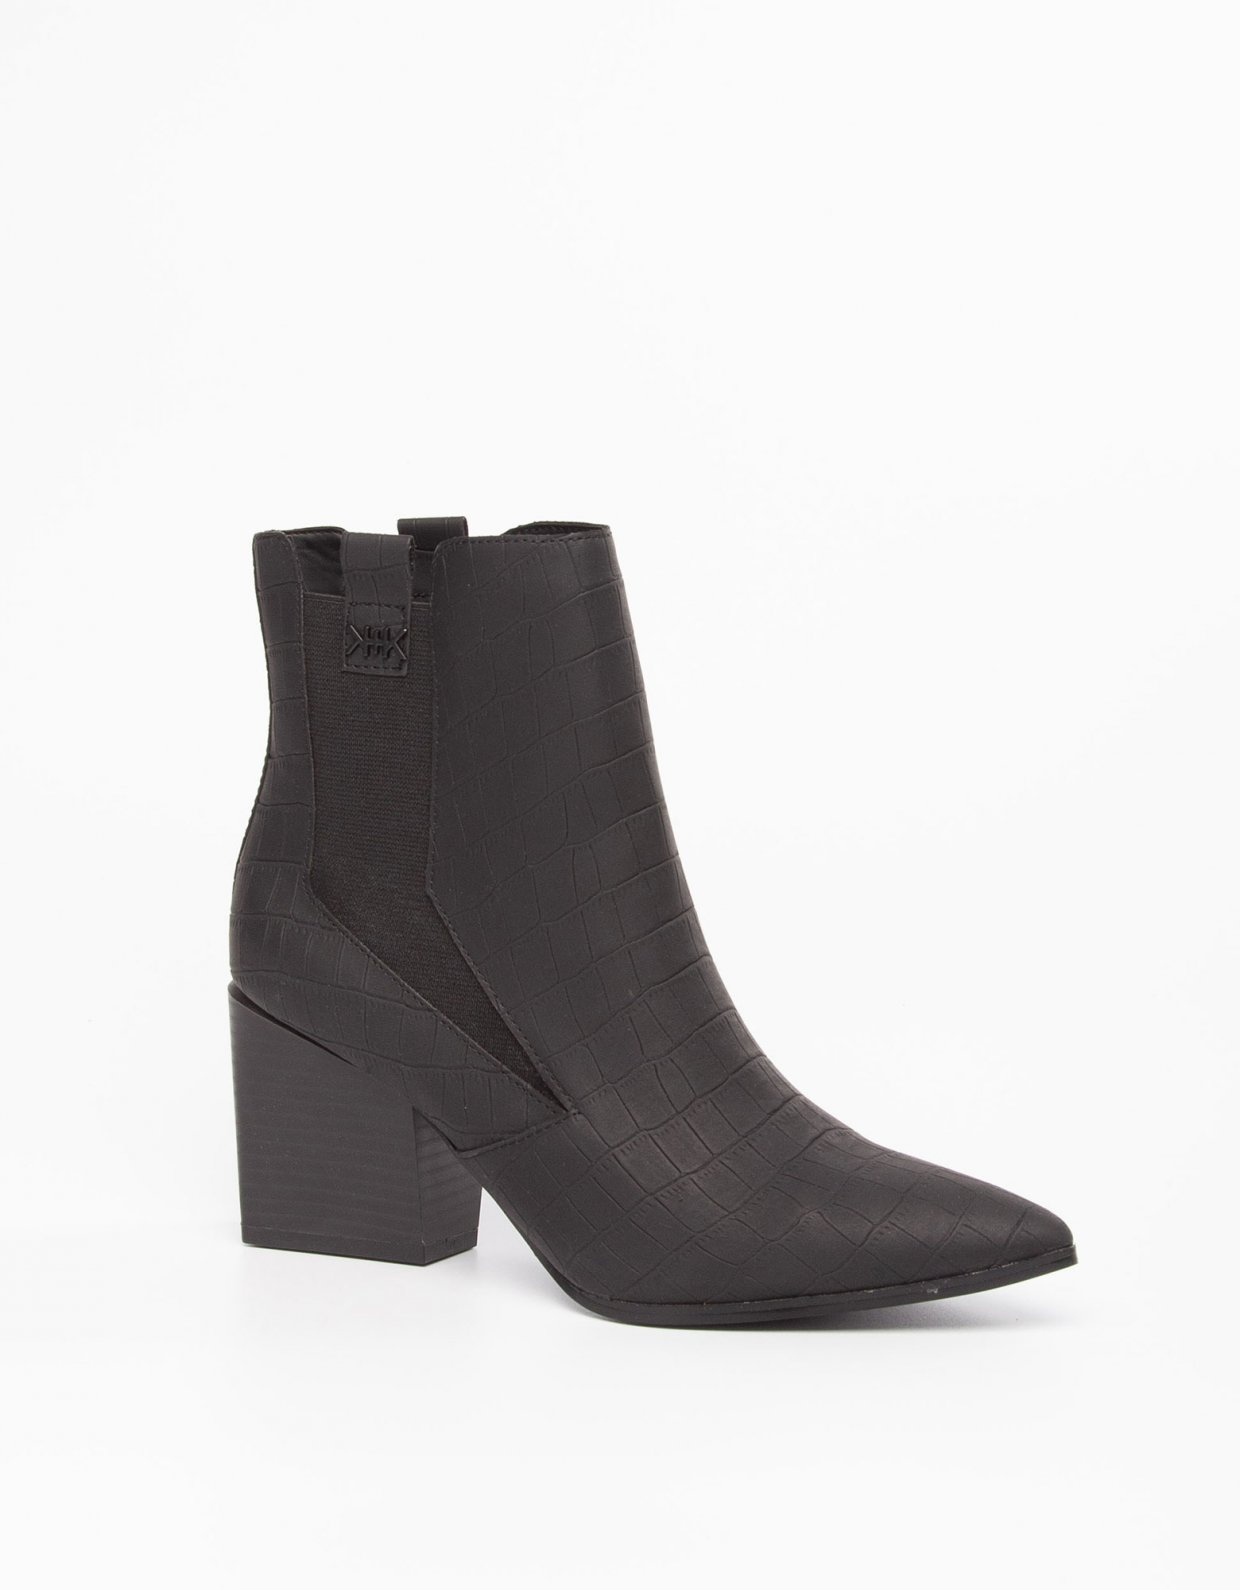 Kendall + Kylie Finigan black booties